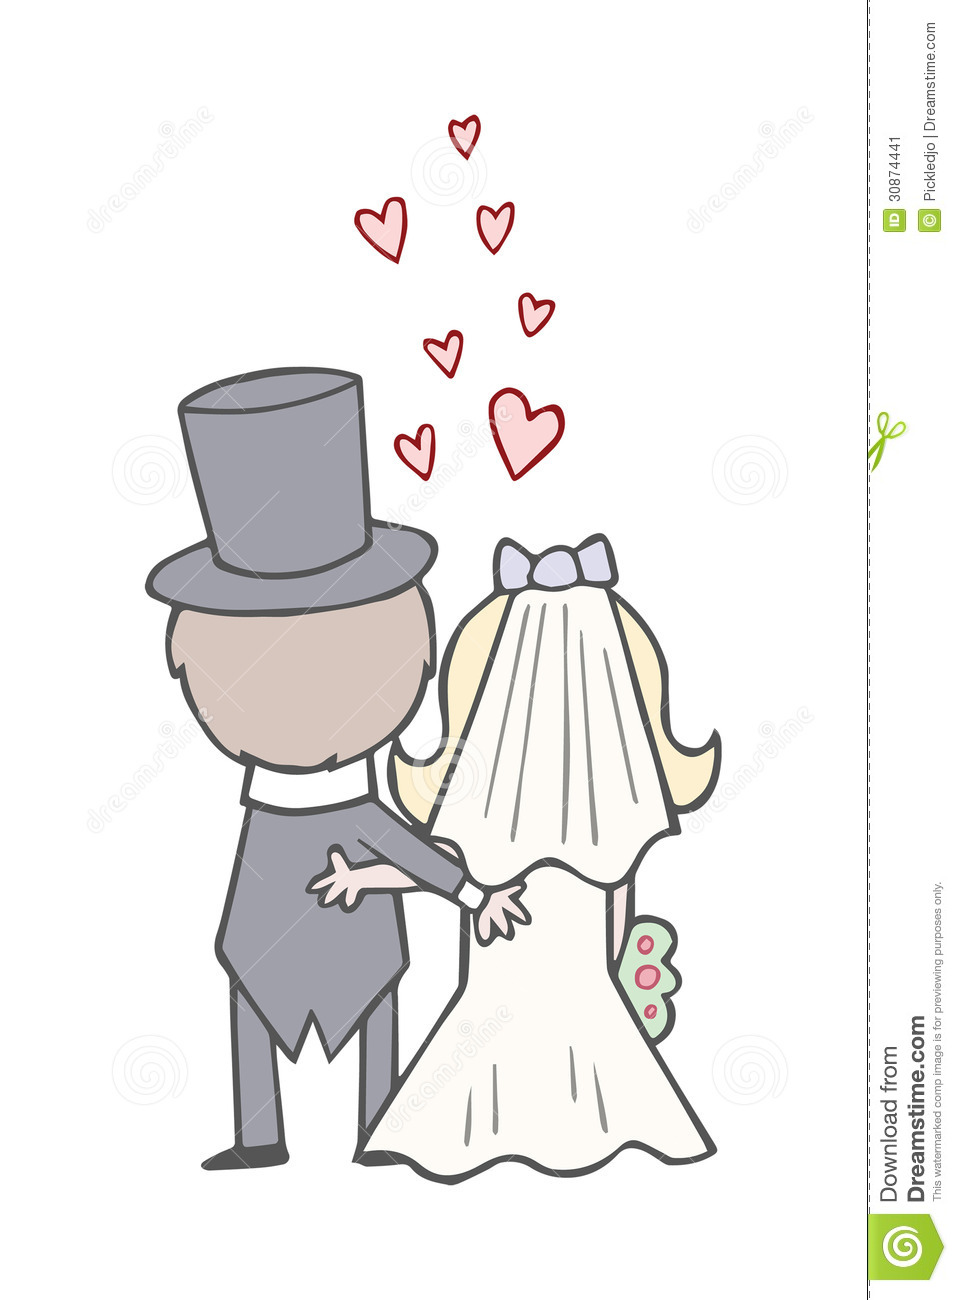 medium resolution of bride clipart bride and groom clip art